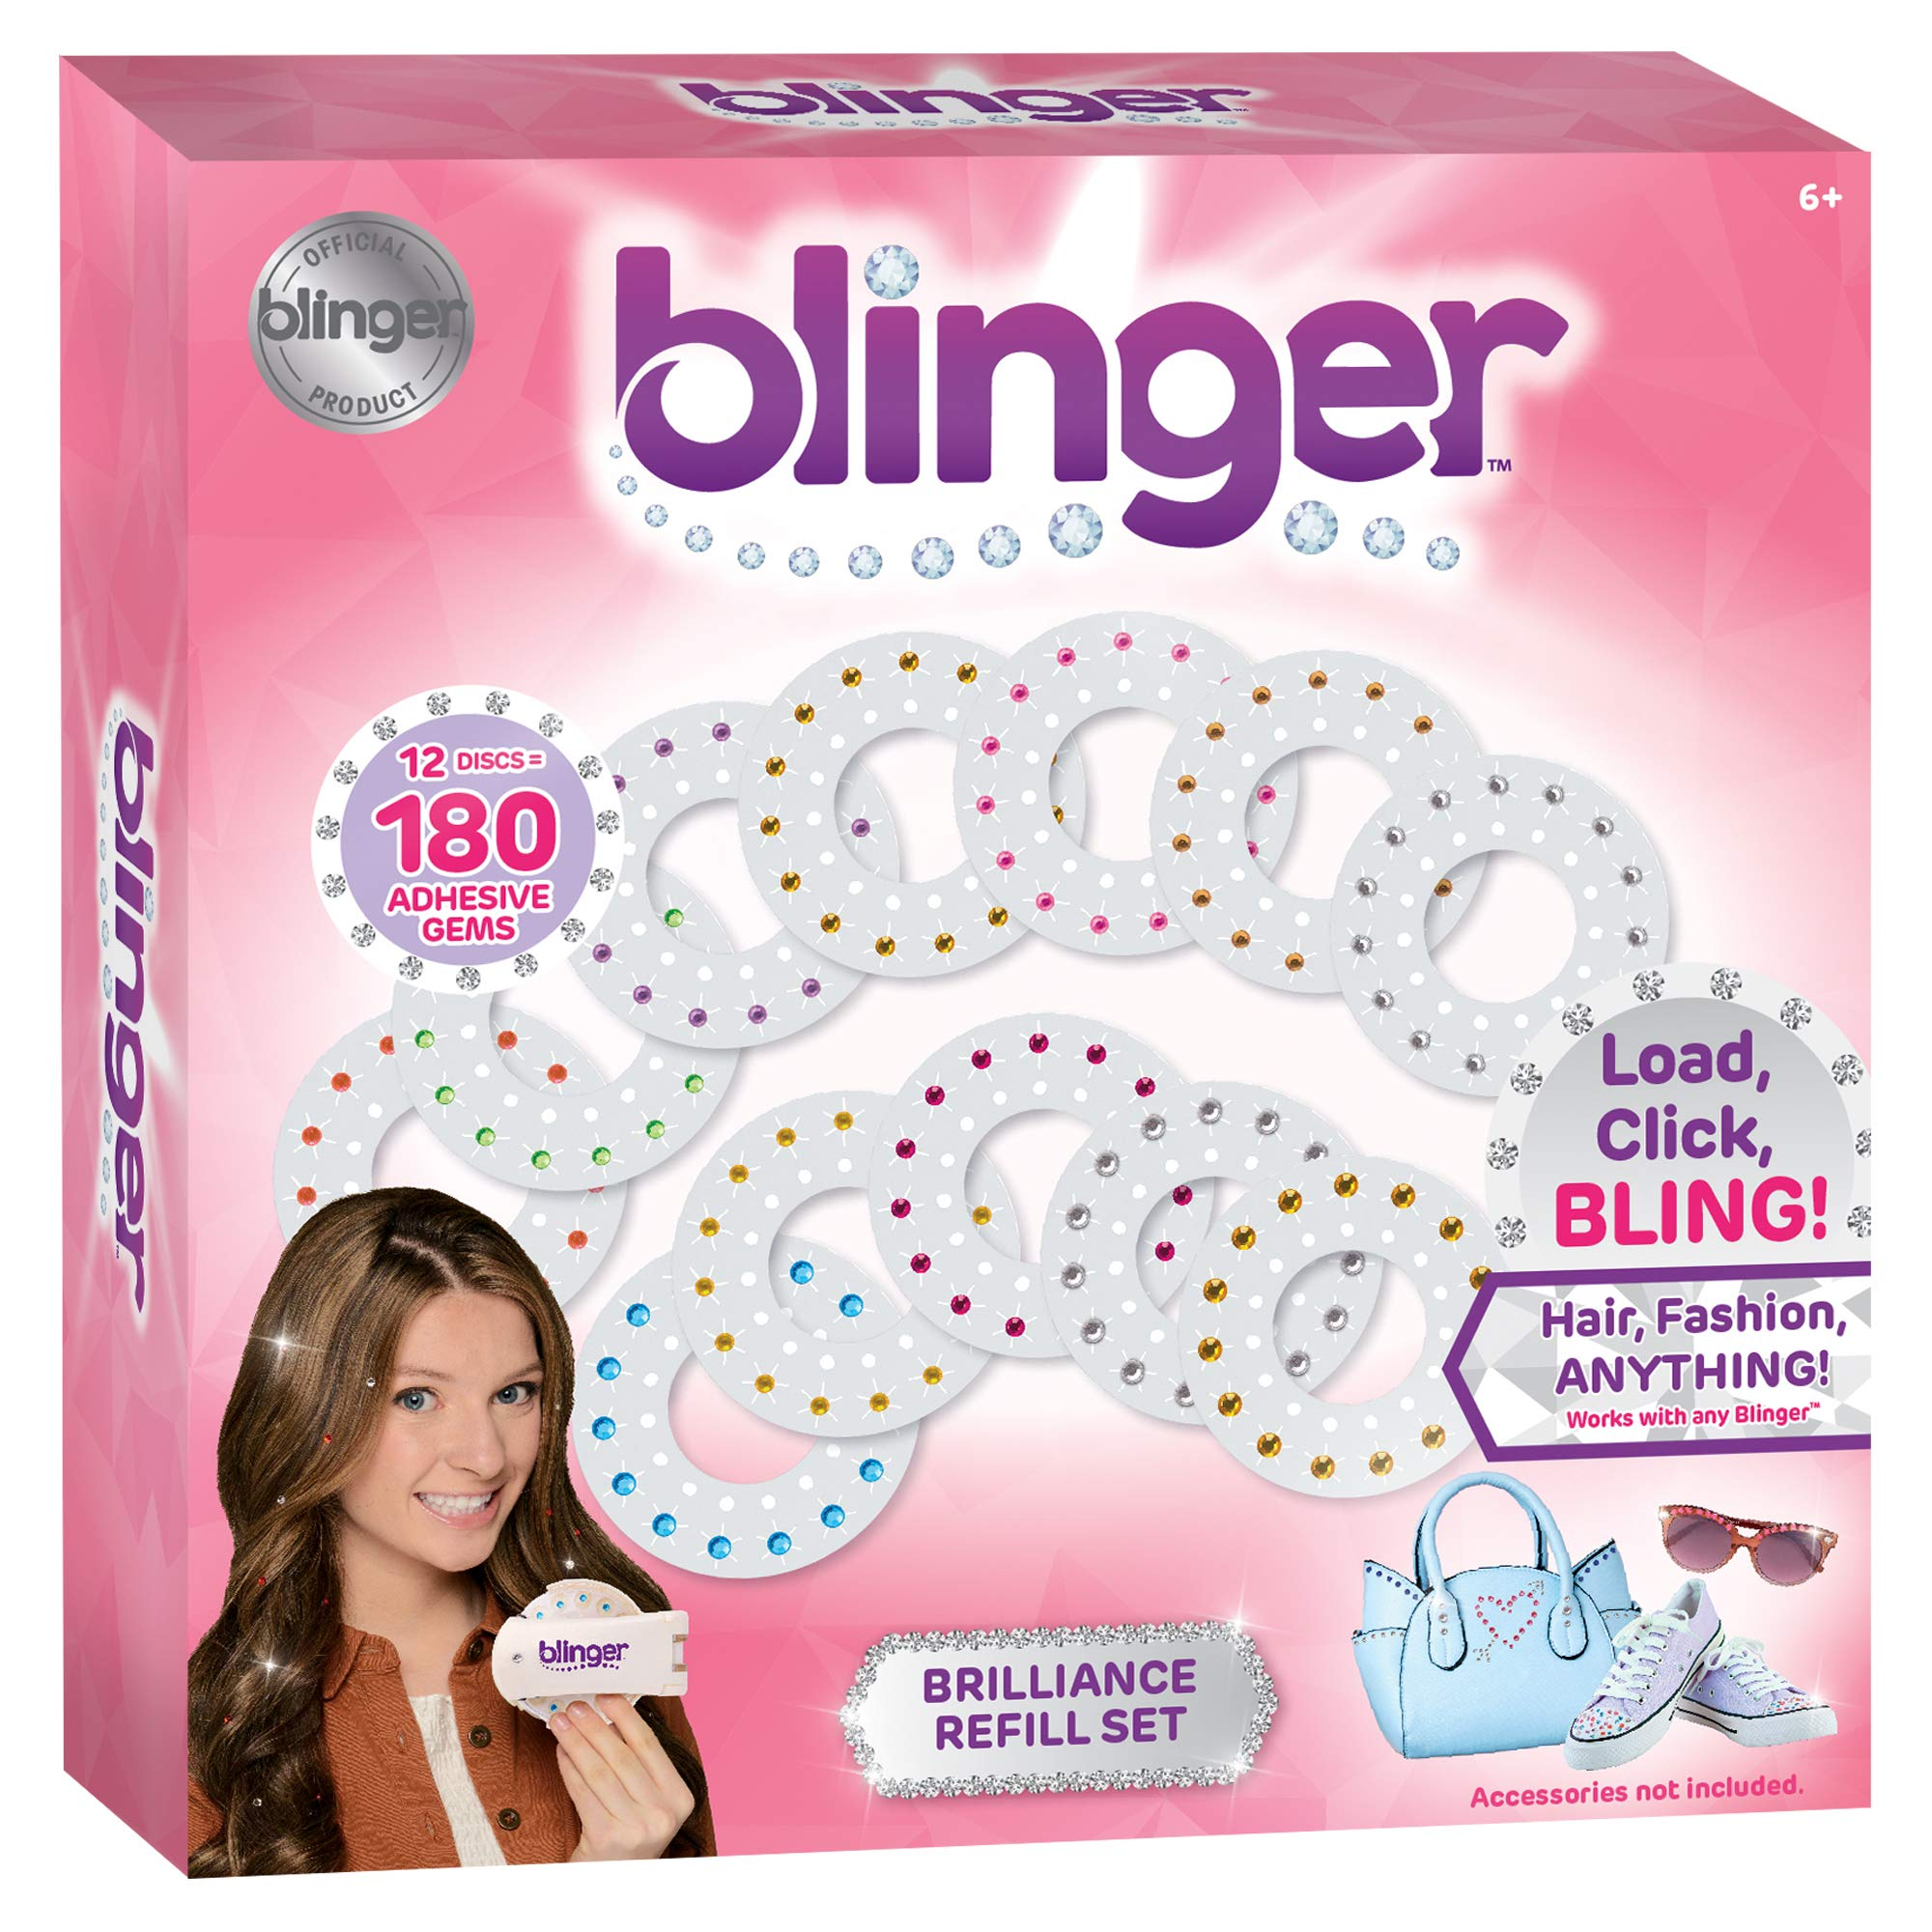 Blinger Brilliance Color Refill Set - Includes 180 Round Gems in a Variety of 11 Colors by Blinger